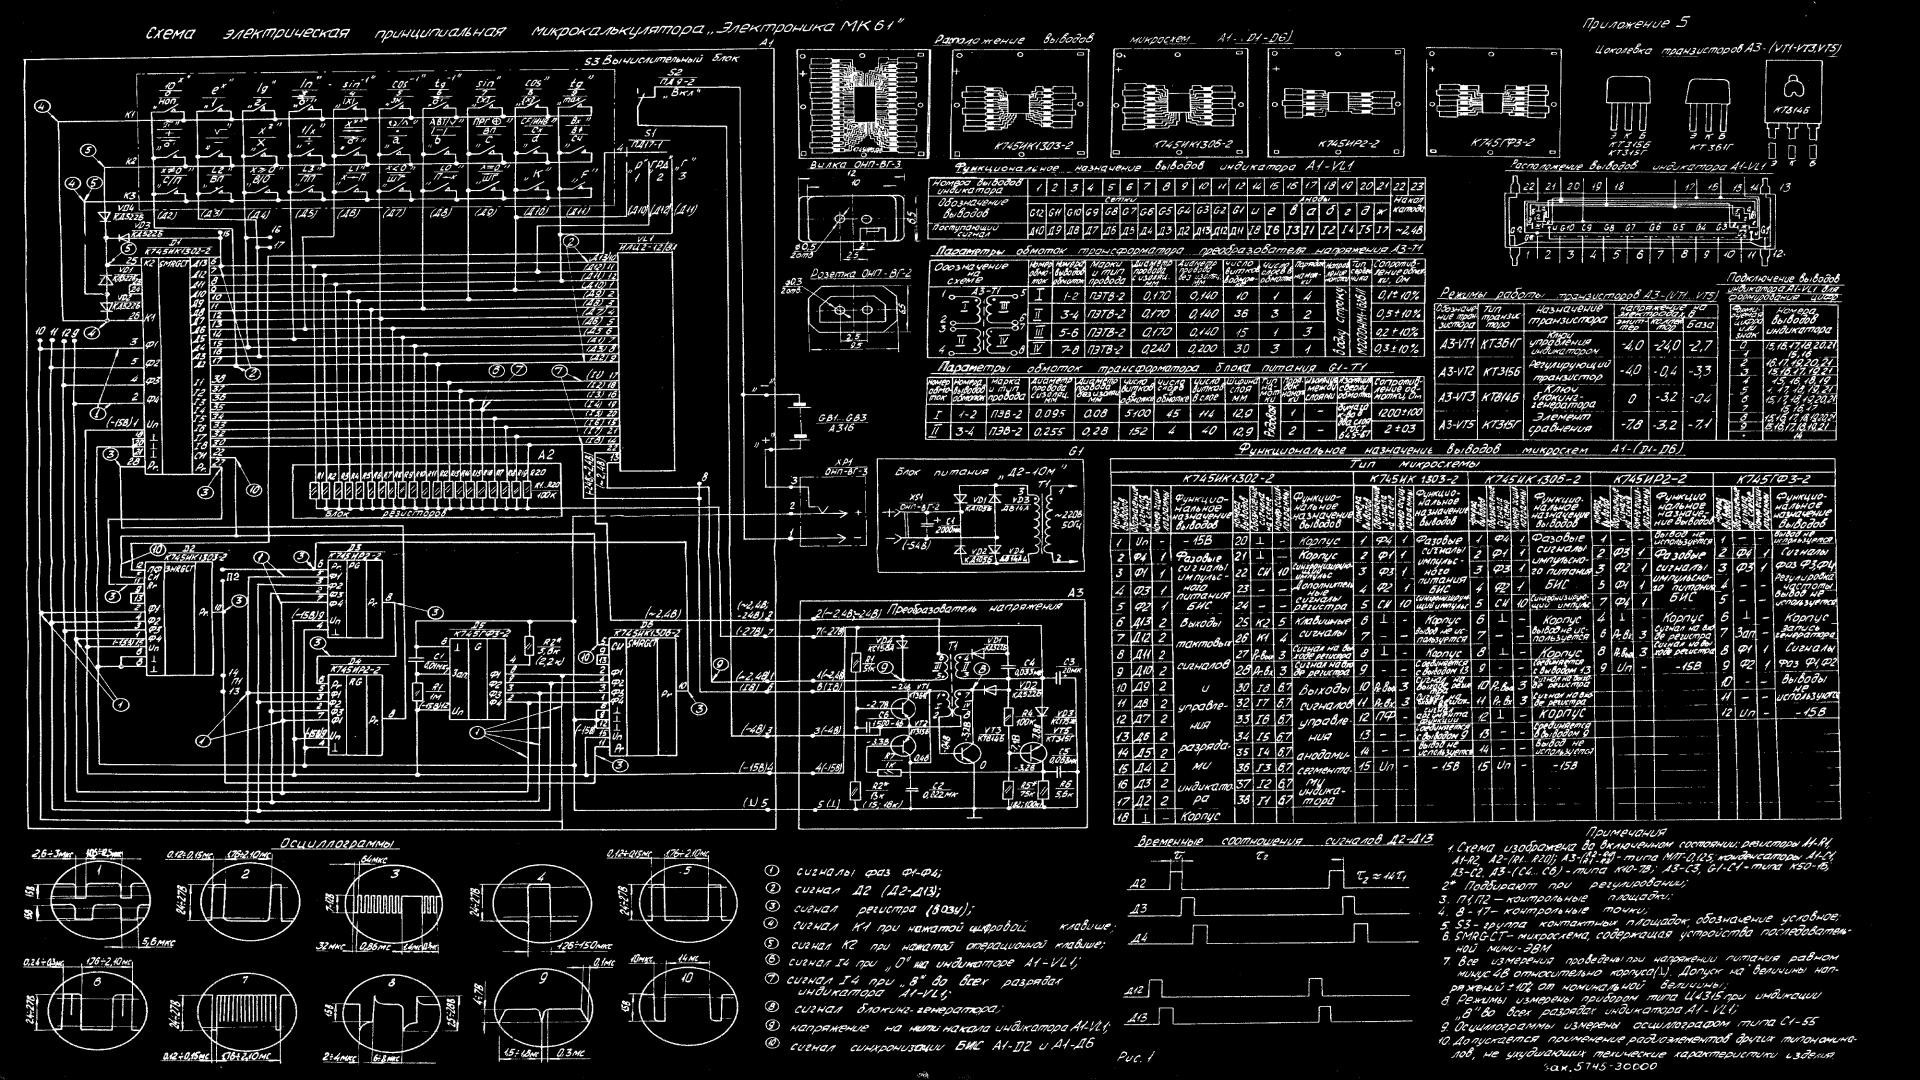 Diagram Blueprint BW Russian Schematic wallpaper